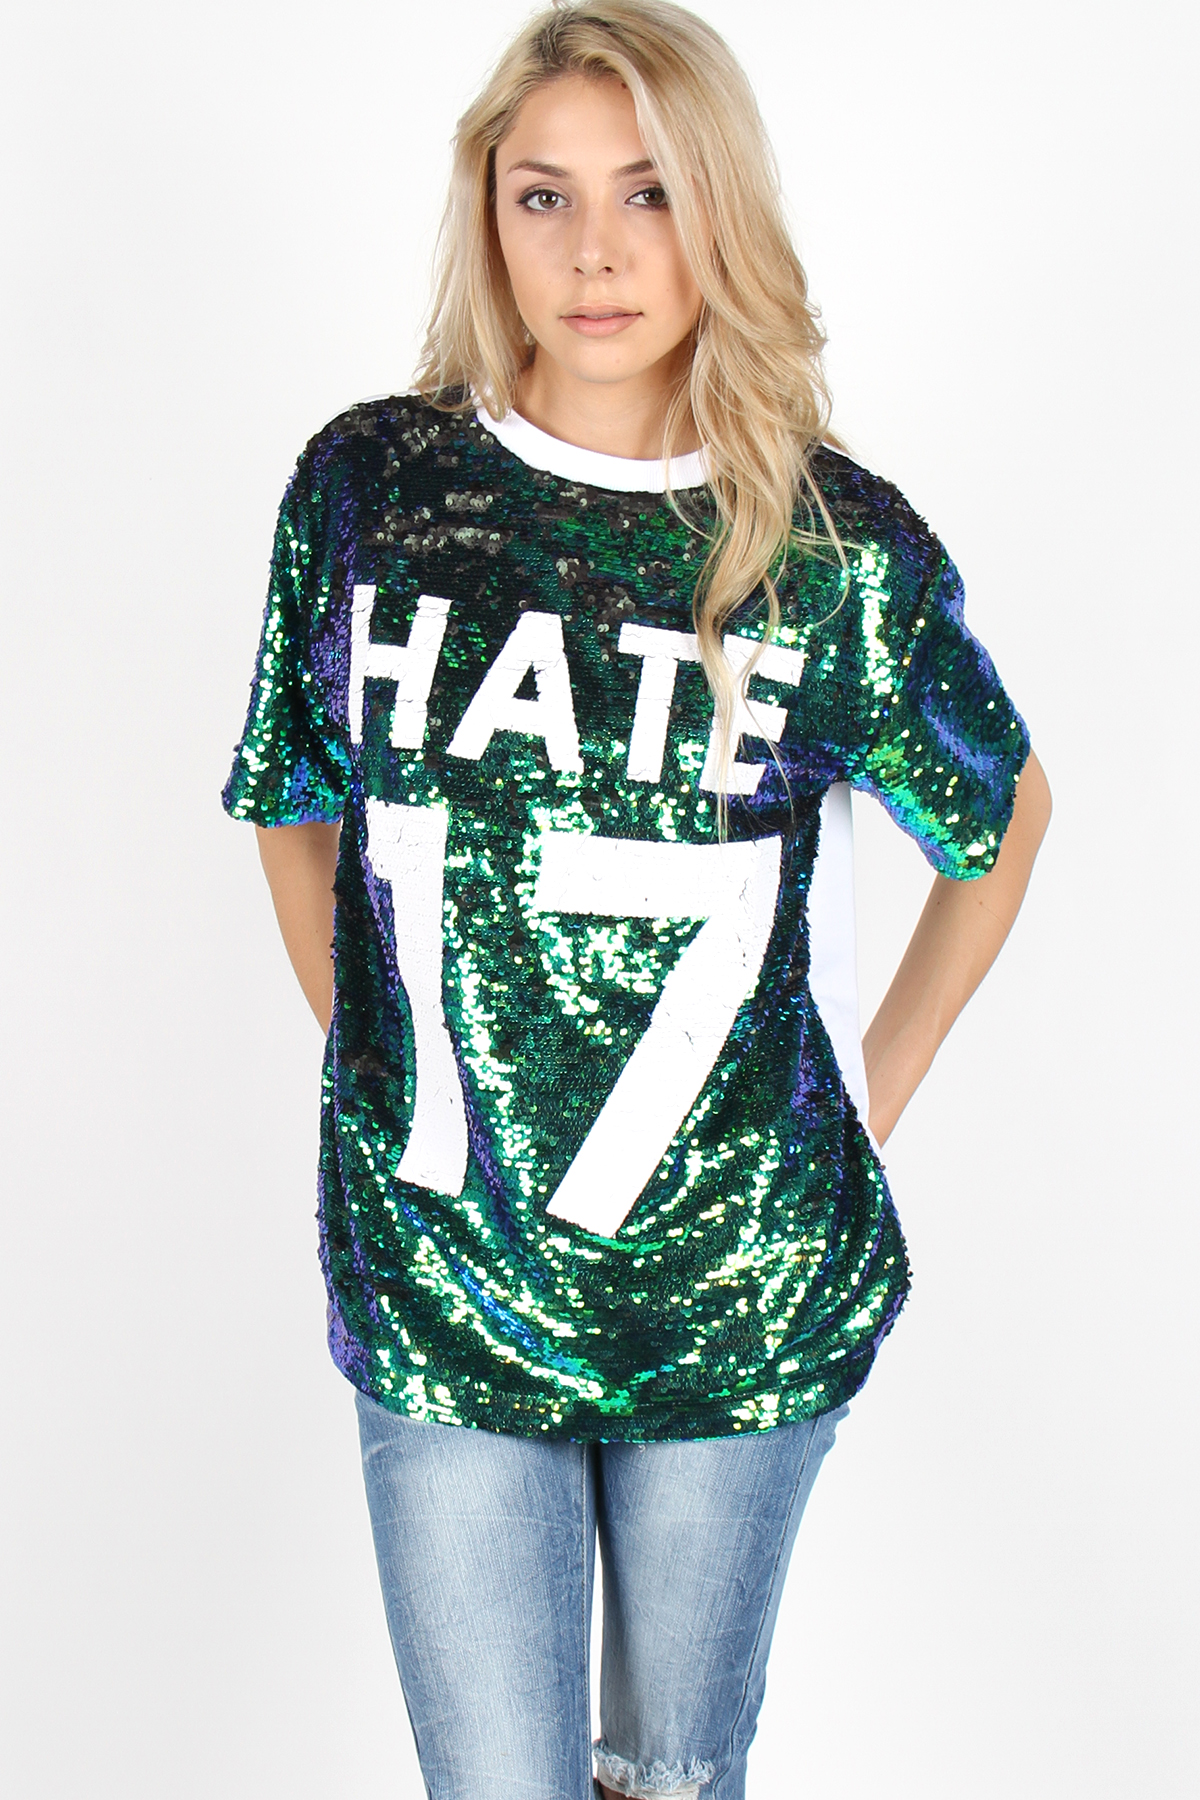 Hate 17 sequin tee